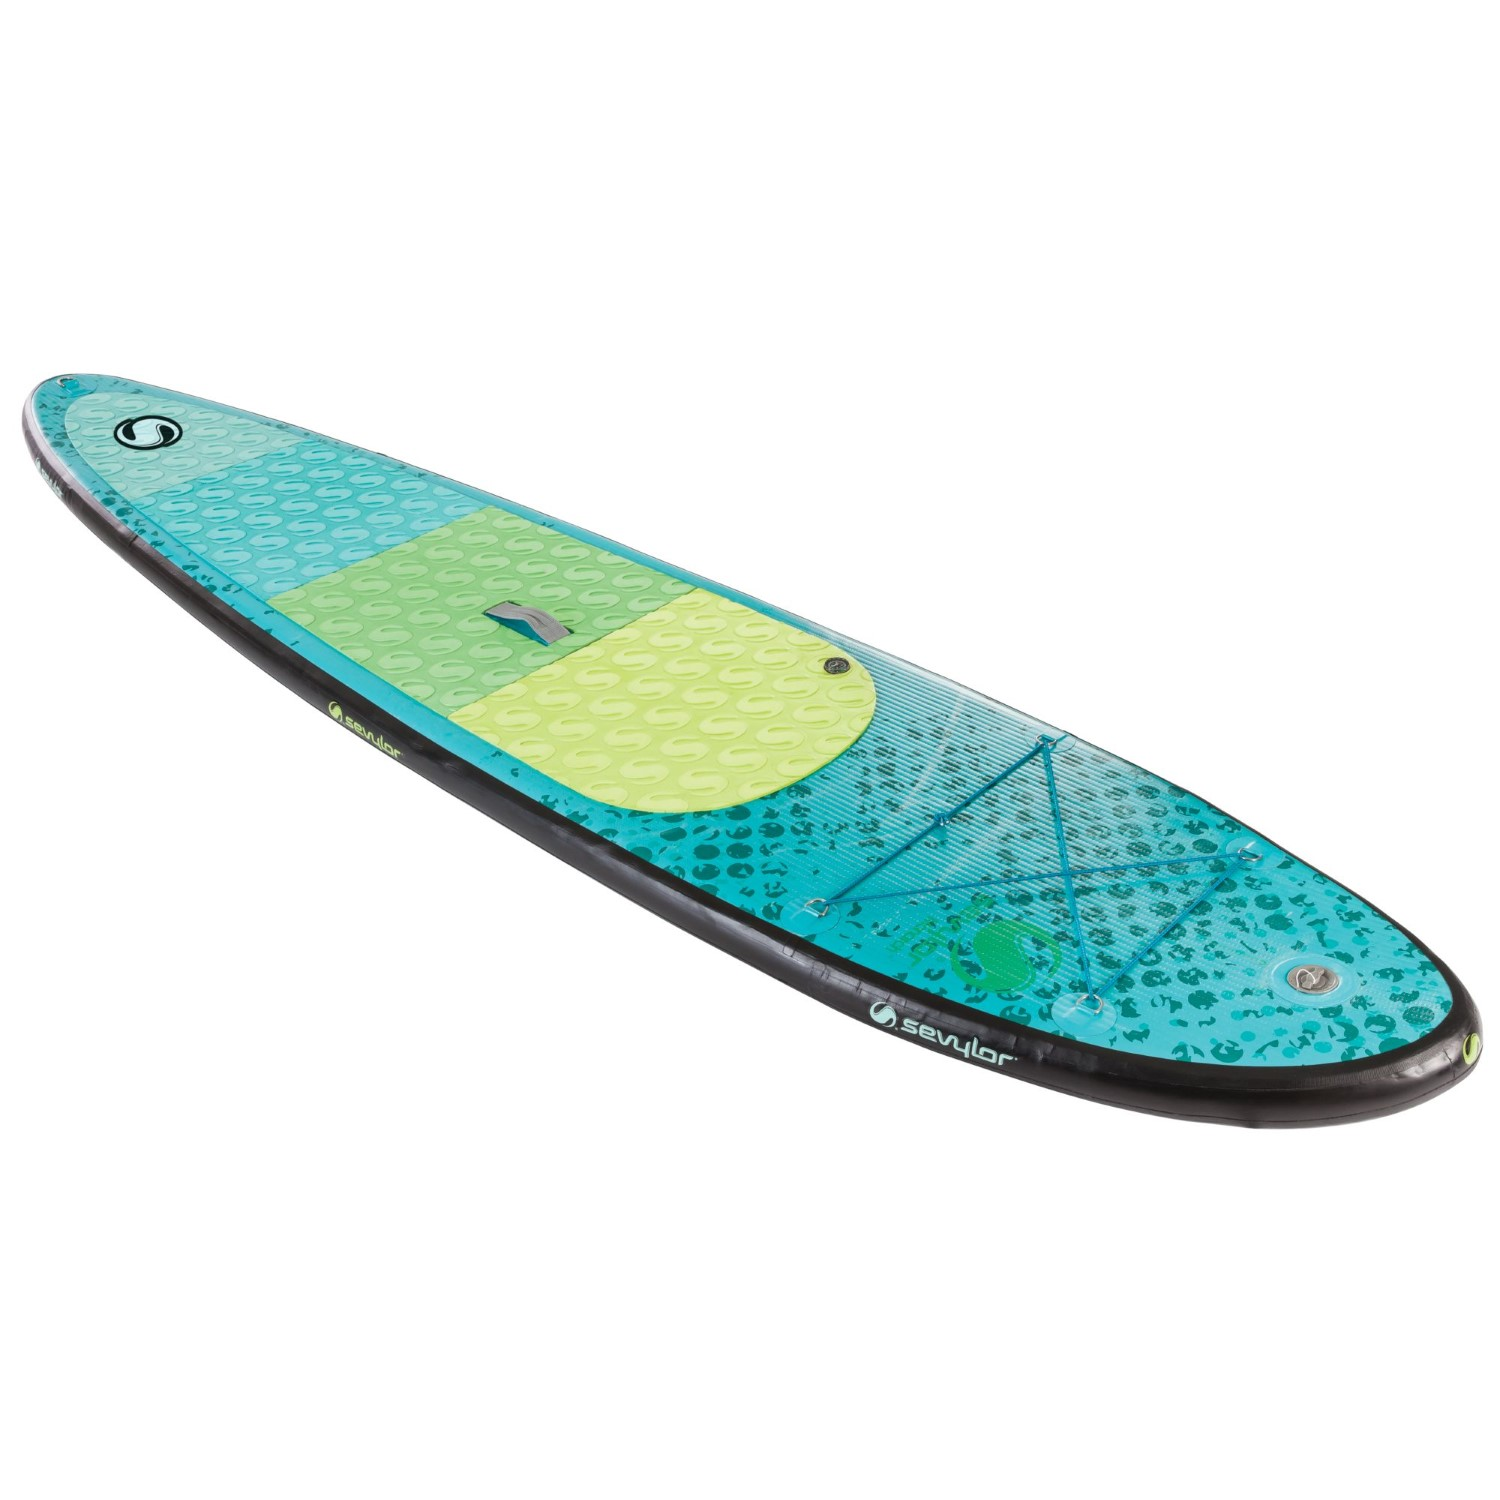 Sevylor Monarch Signature Inflatable Stand Up Paddle Board by Sevylor